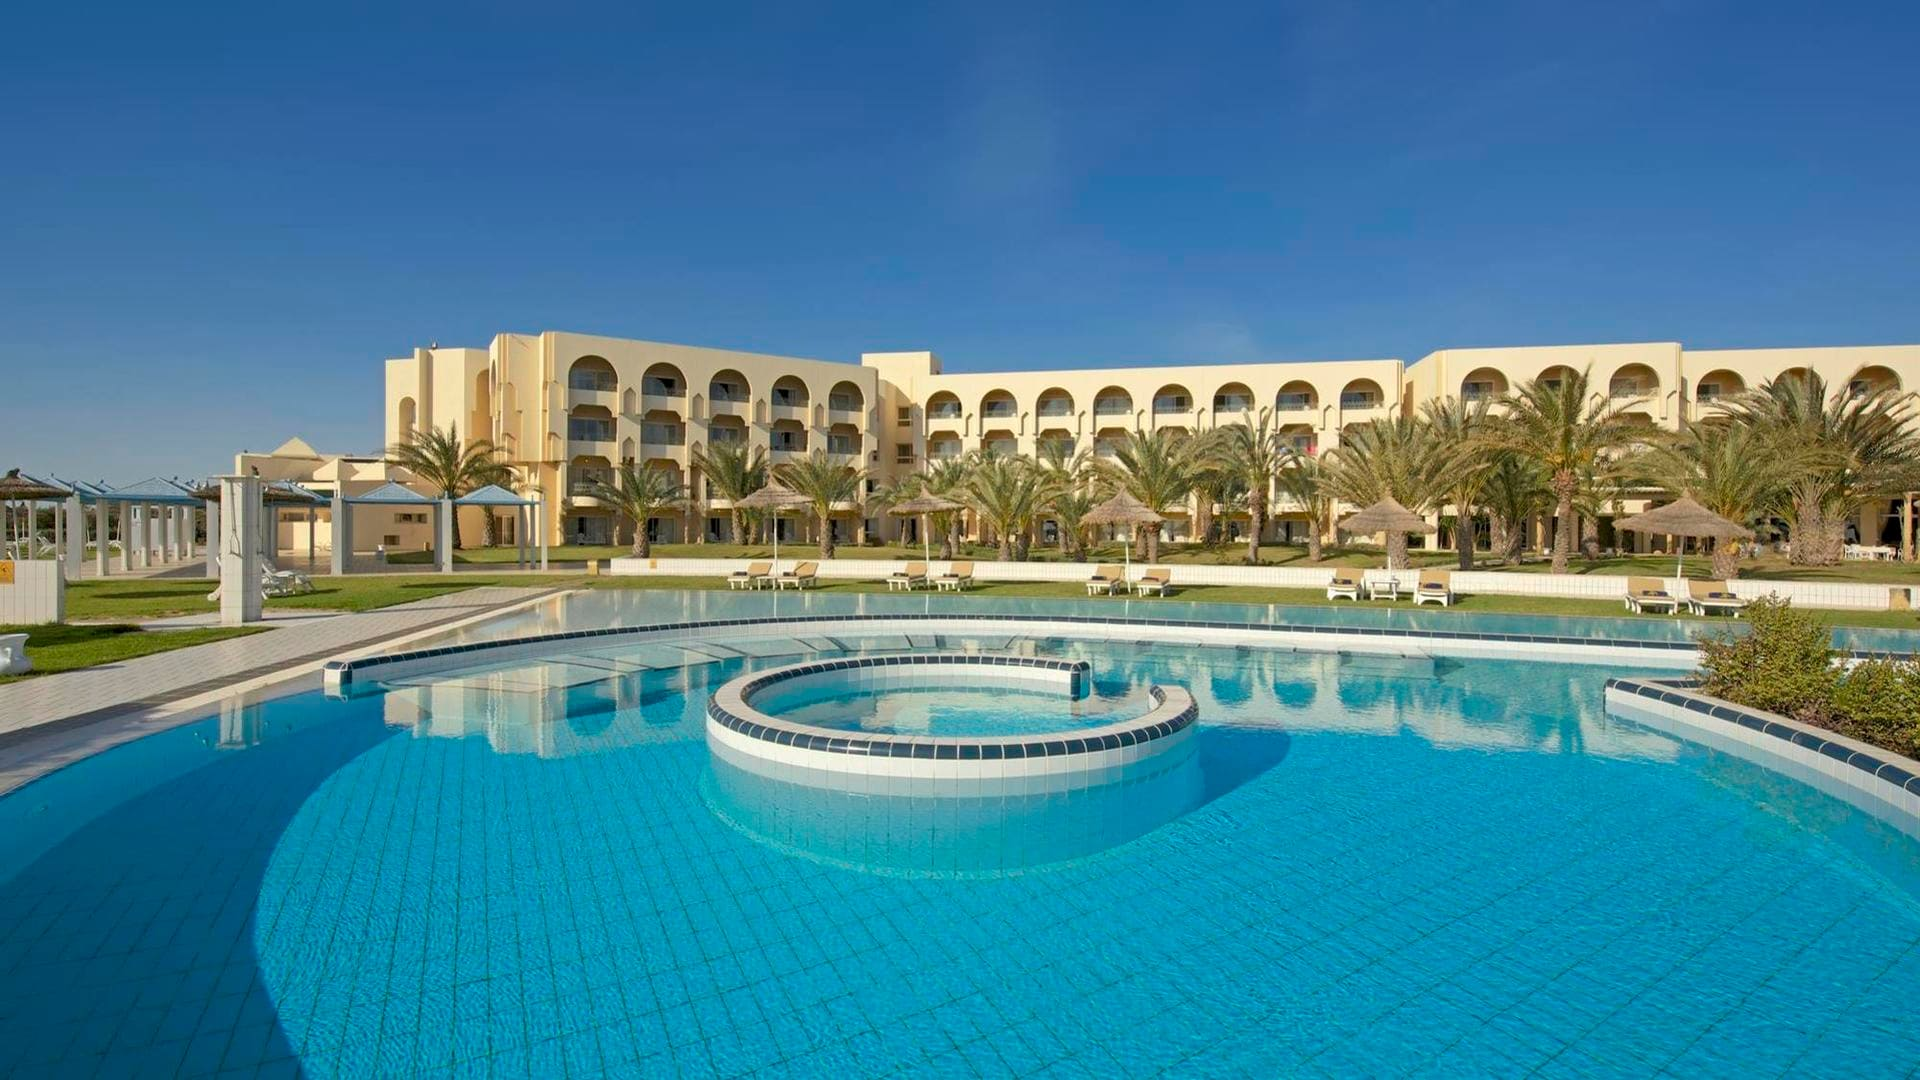 Iberostar Averroes Hotel 4*